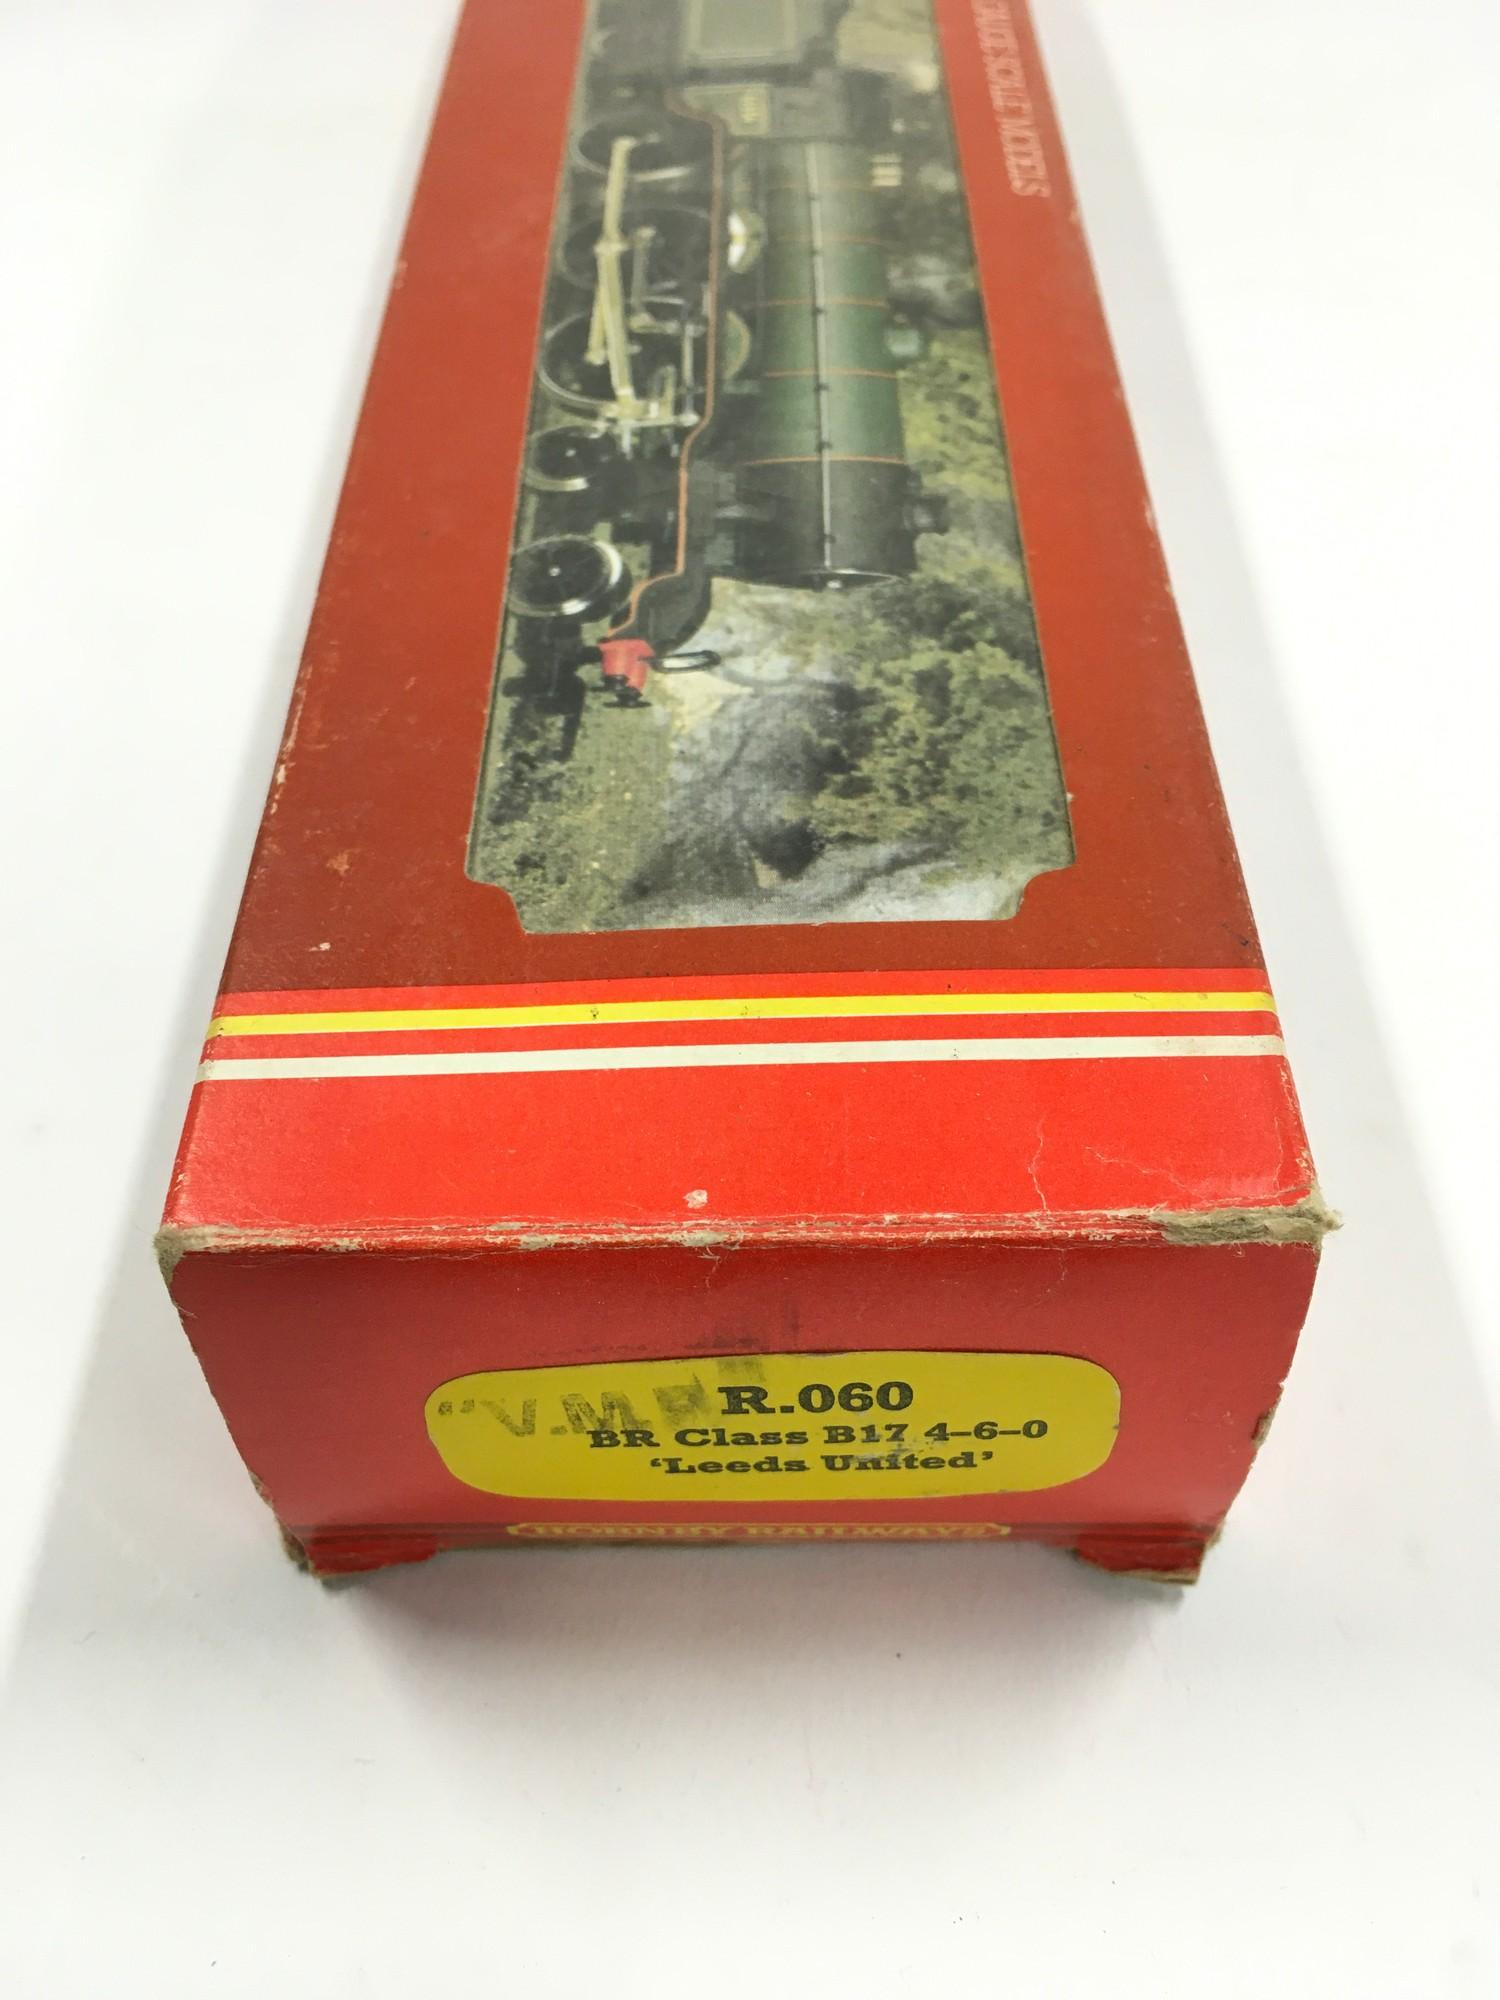 "Hornby R.060 BR Class B17 4-6-0 ""Leeds United"" locomotive. Appears Mint in Good Plus box. - Image 4 of 4"